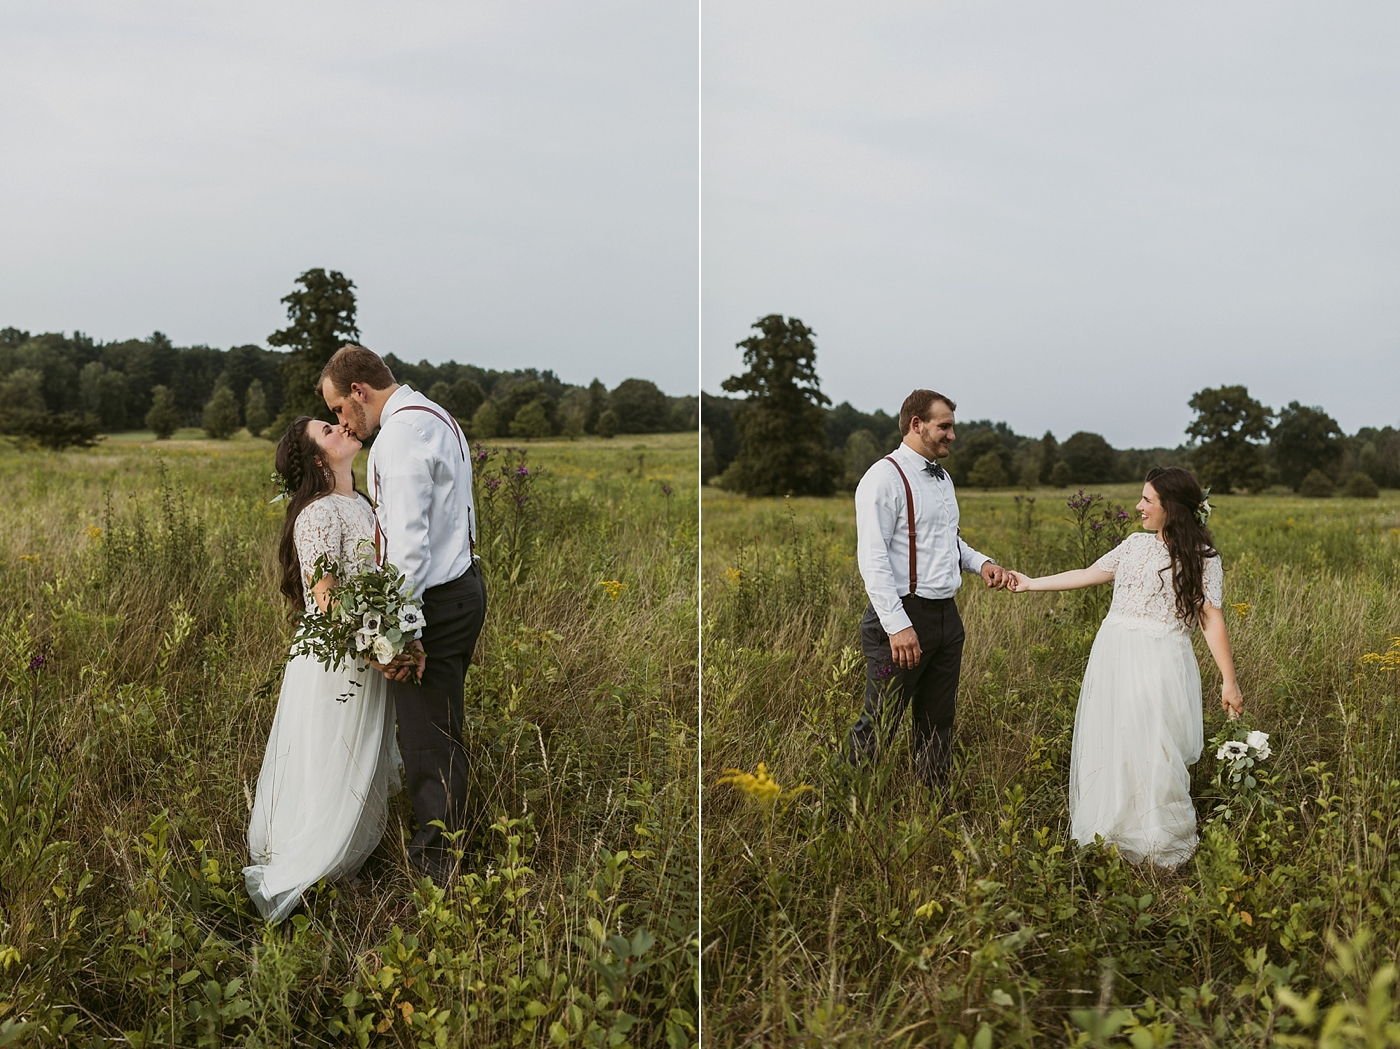 Meadow-Elopement-Ashley+Ben_MJPHOTO2018-185.jpg